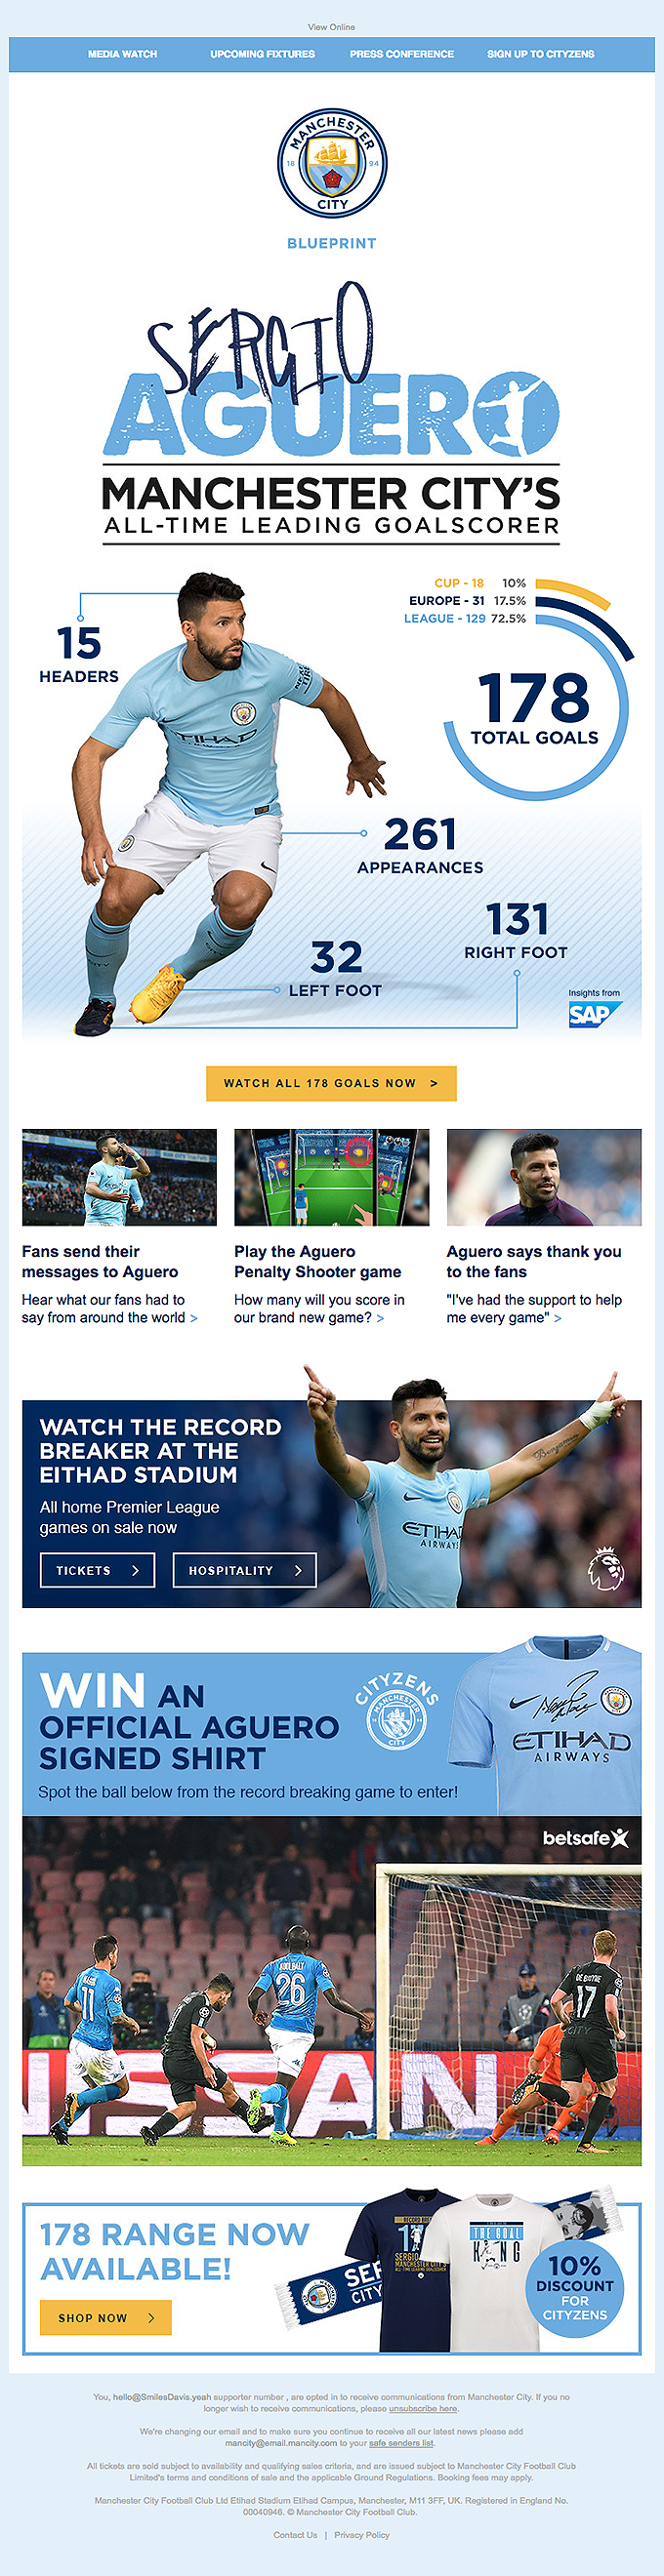 Watch all Aguero's goals, win his shirt & a message from him!